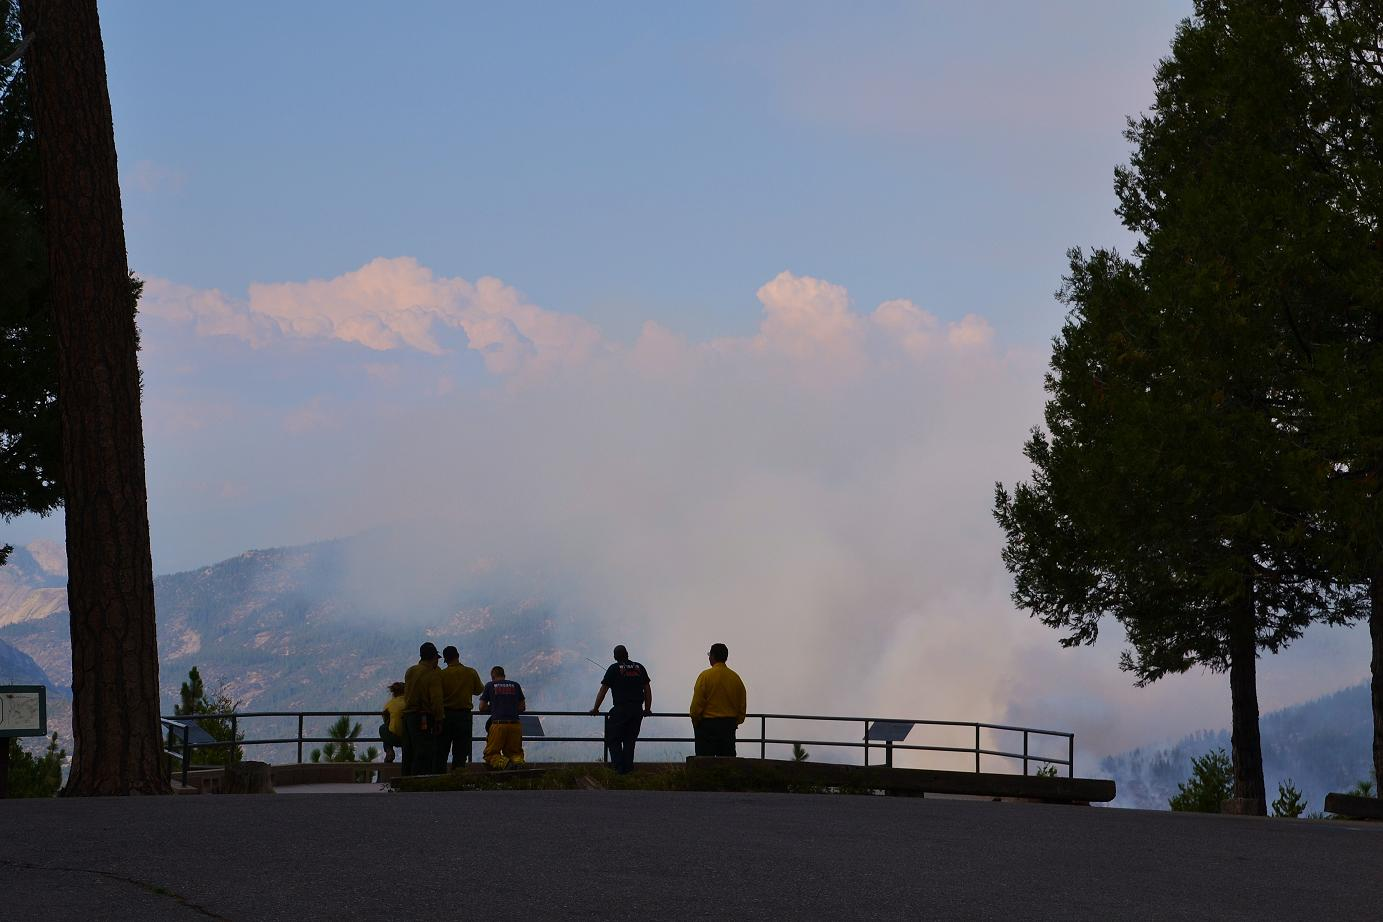 Firefighters at Mile High - photo by Gina Clugston